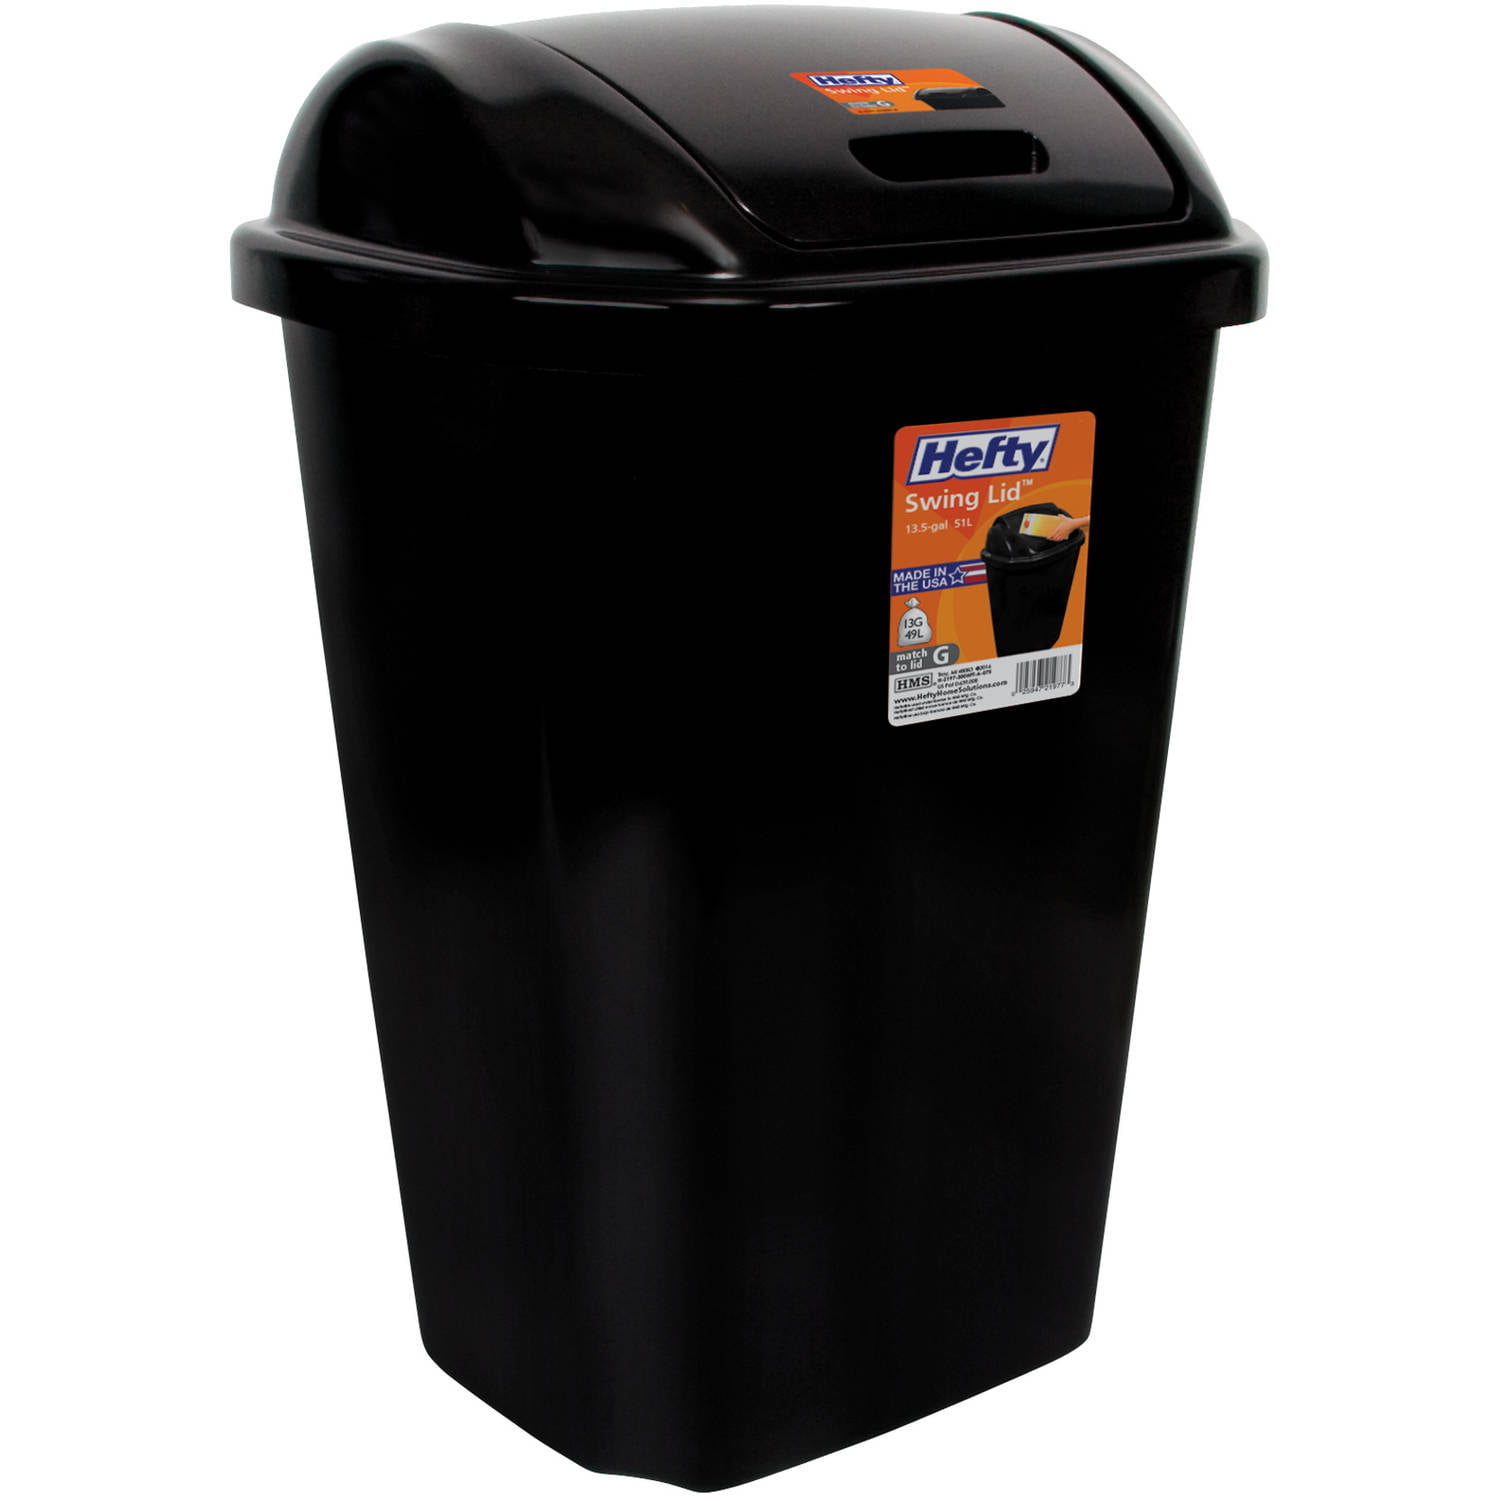 Hefty Swing-Lid 13.5-Gallon Trash Can, Black - Waste Disposal & Composters - Walmart.com